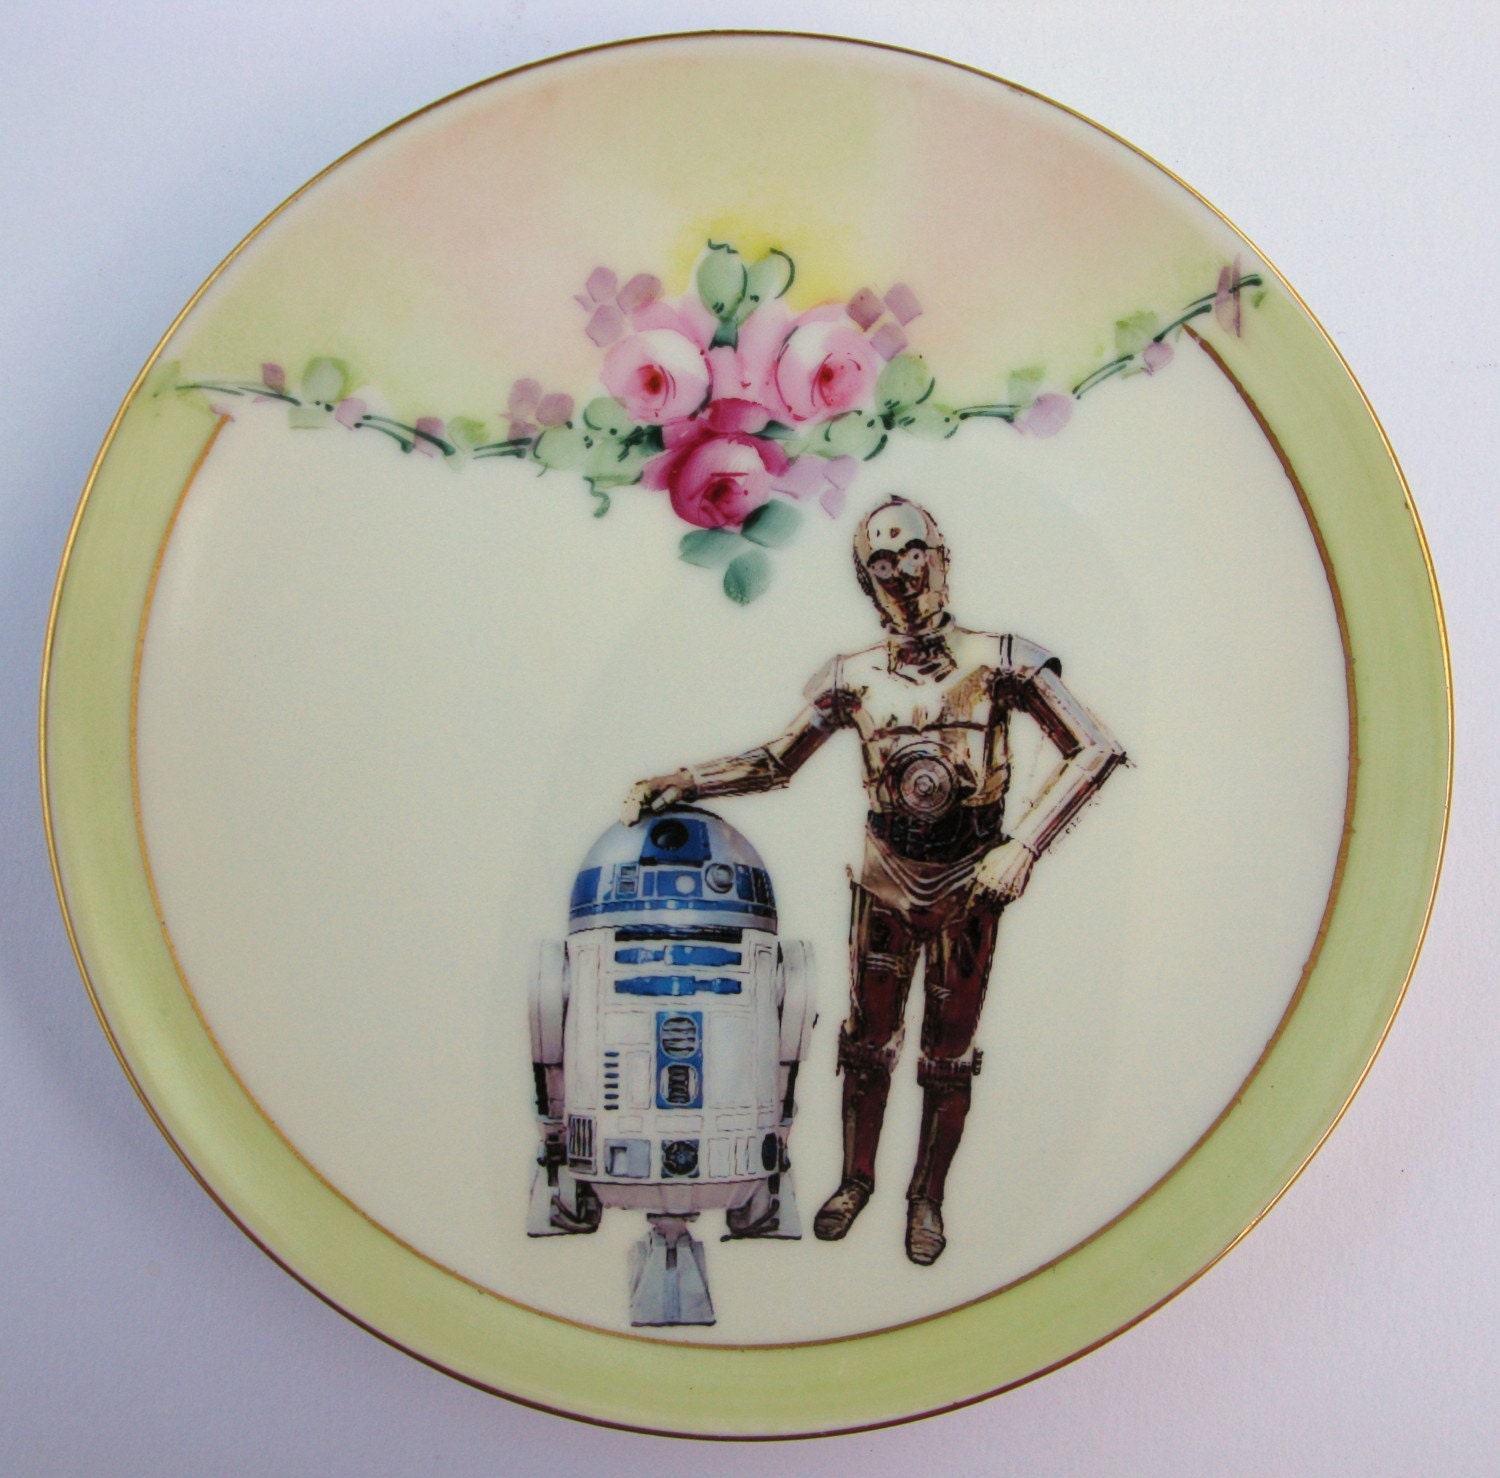 BFF C-3PO and R2-D2 portrait plate - Altered Antique Plate